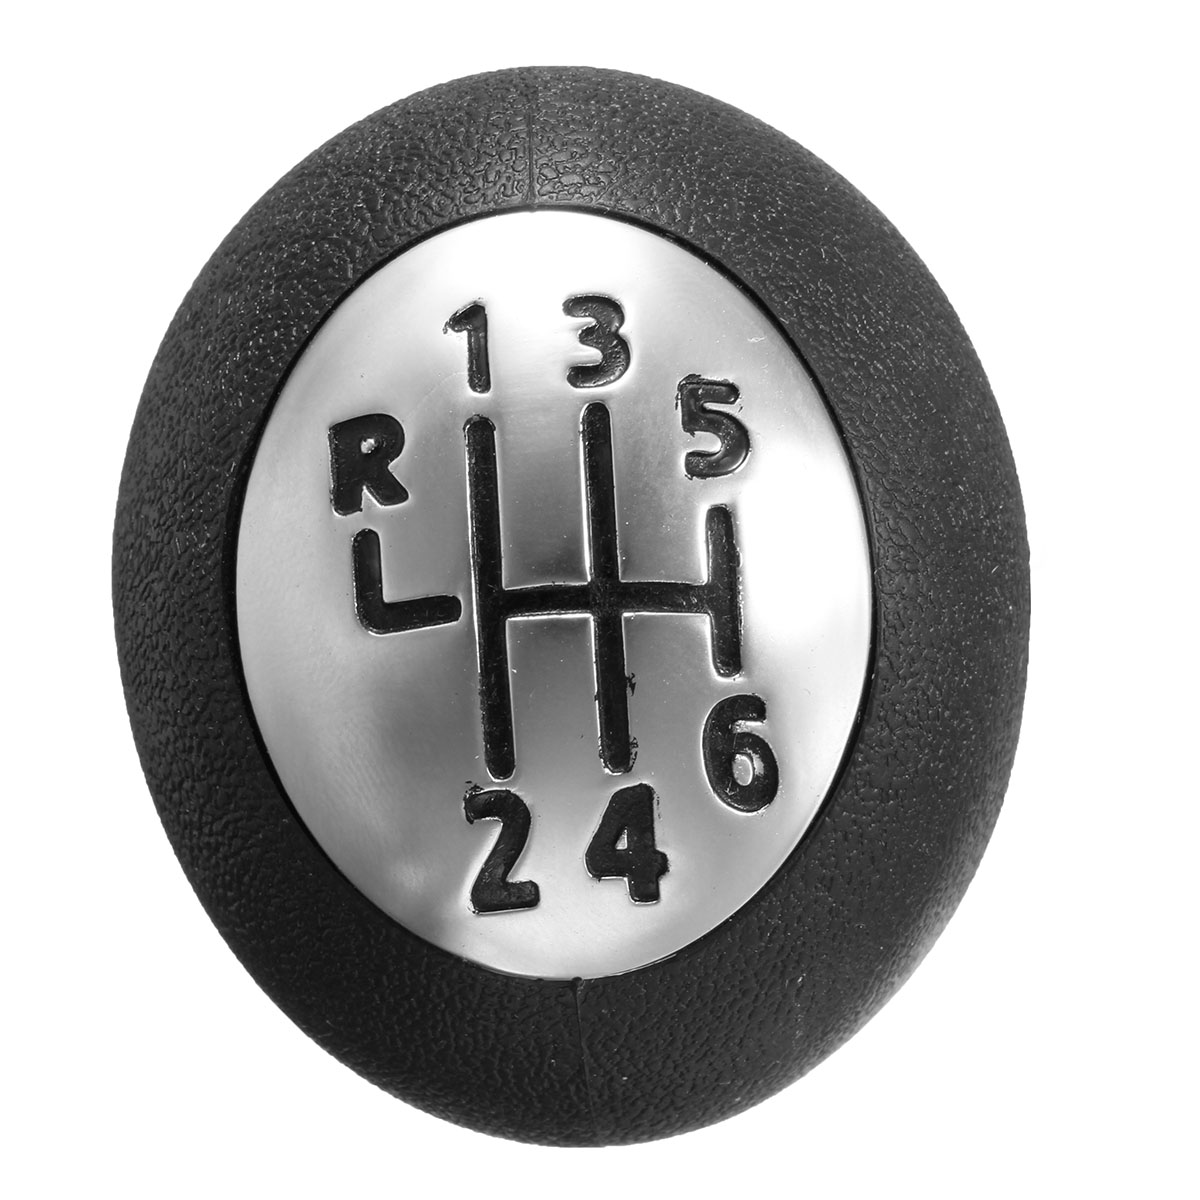 Six Speed Gear Knob Shift Stick For Renault Vauxhall Opel Nissan